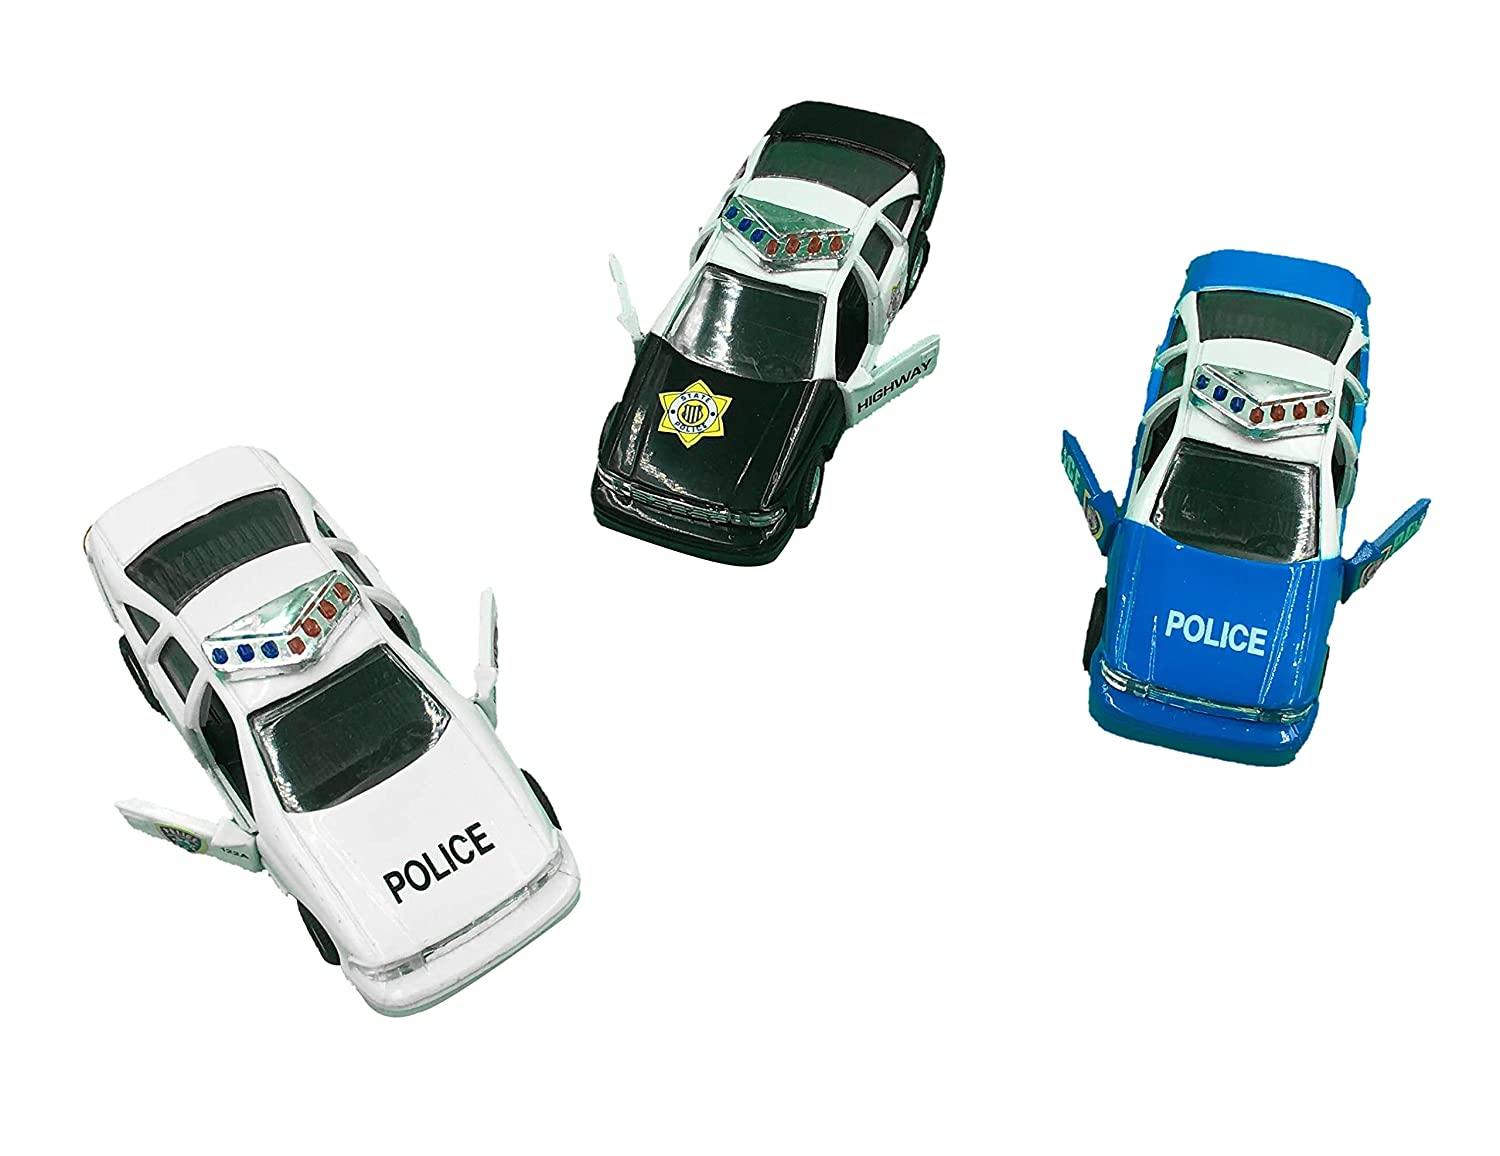 ToyZe® Police Car Die Cast Metal, 5 Inch Pull Back Police Cars, Open-able Doors, Rubber Tires, Full Metal Body, Set of 3: Amazon.es: Juguetes y juegos